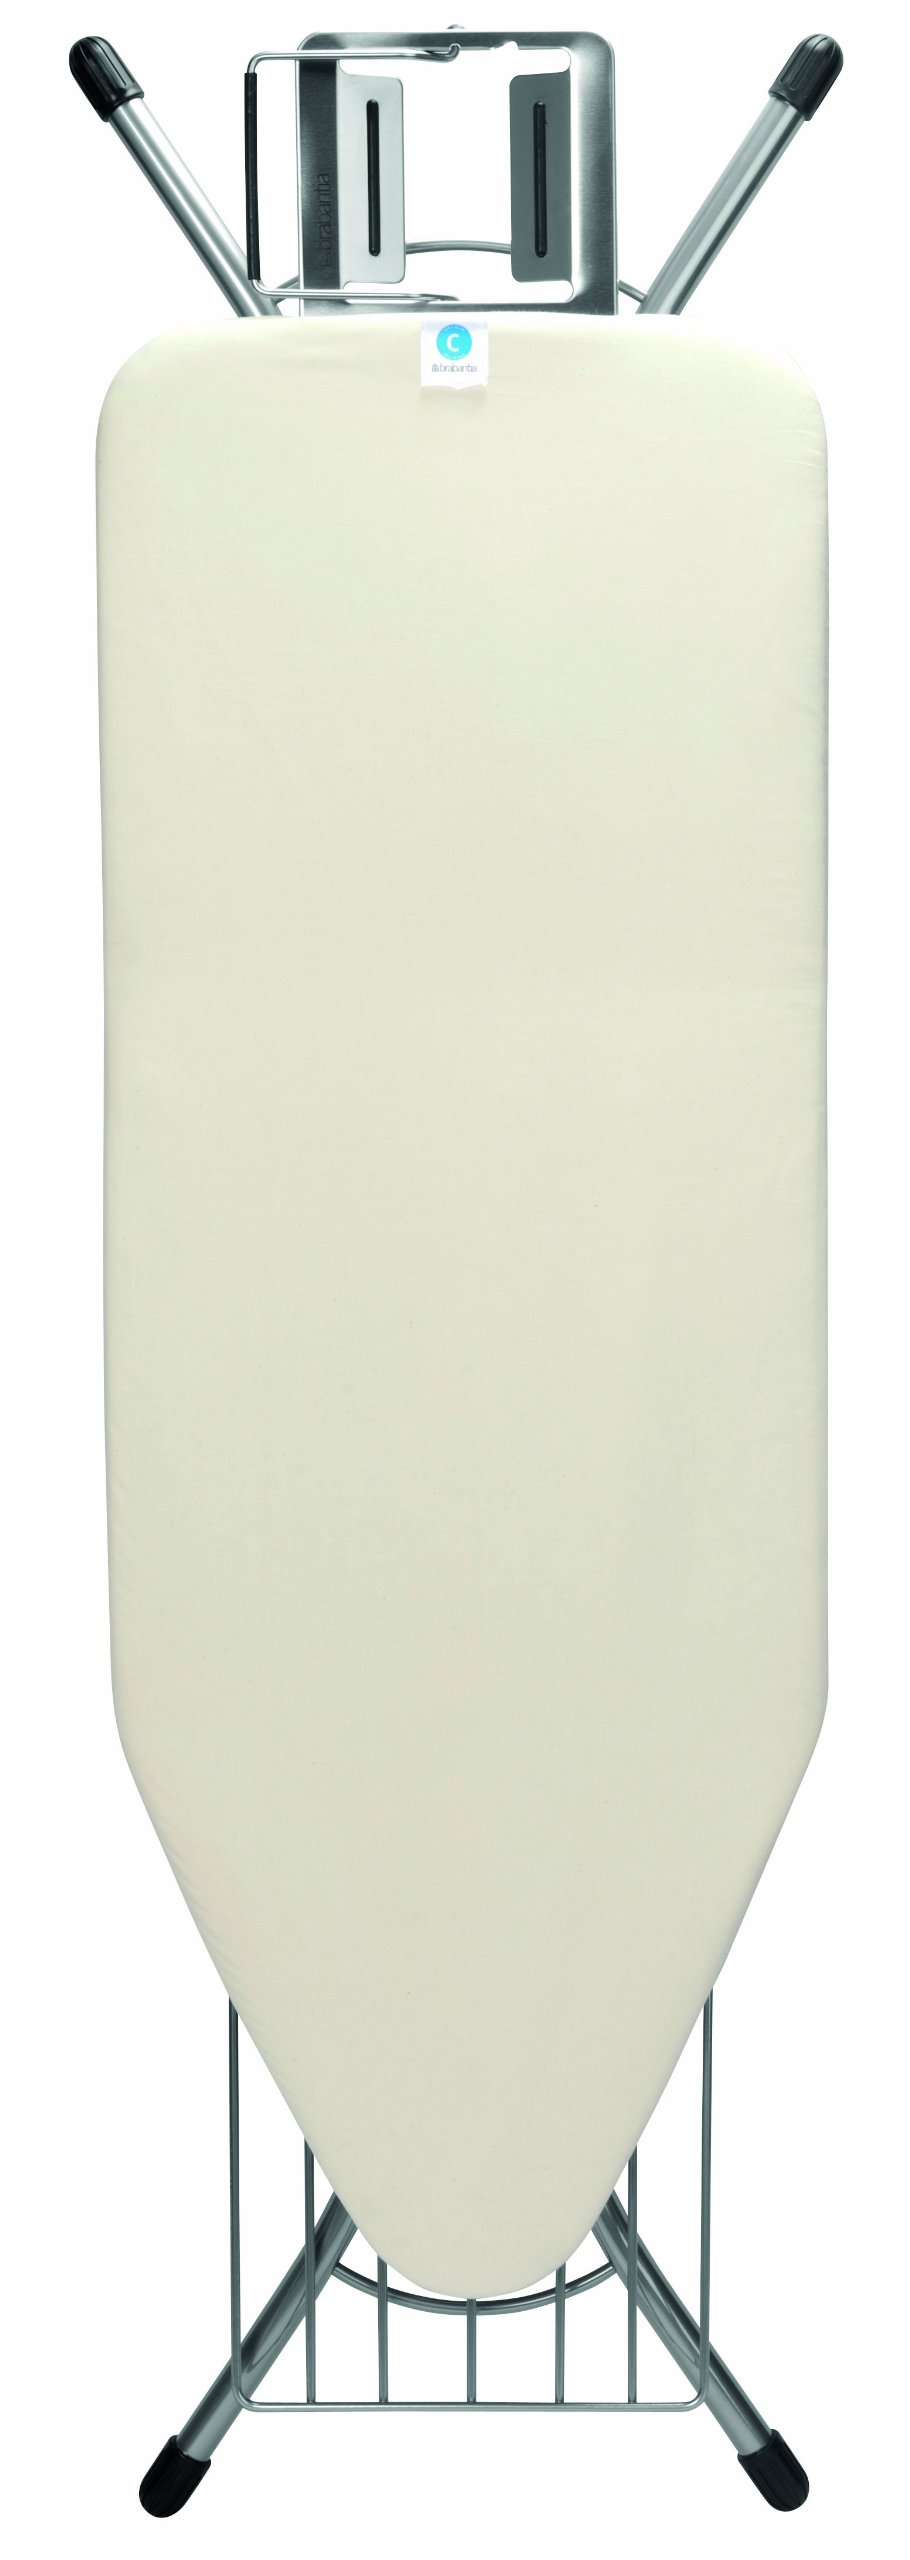 Brabantia Ironing Board with Steam Iron Rest and Linen Rack, Size C, Wide - Ecru Cover by Brabantia